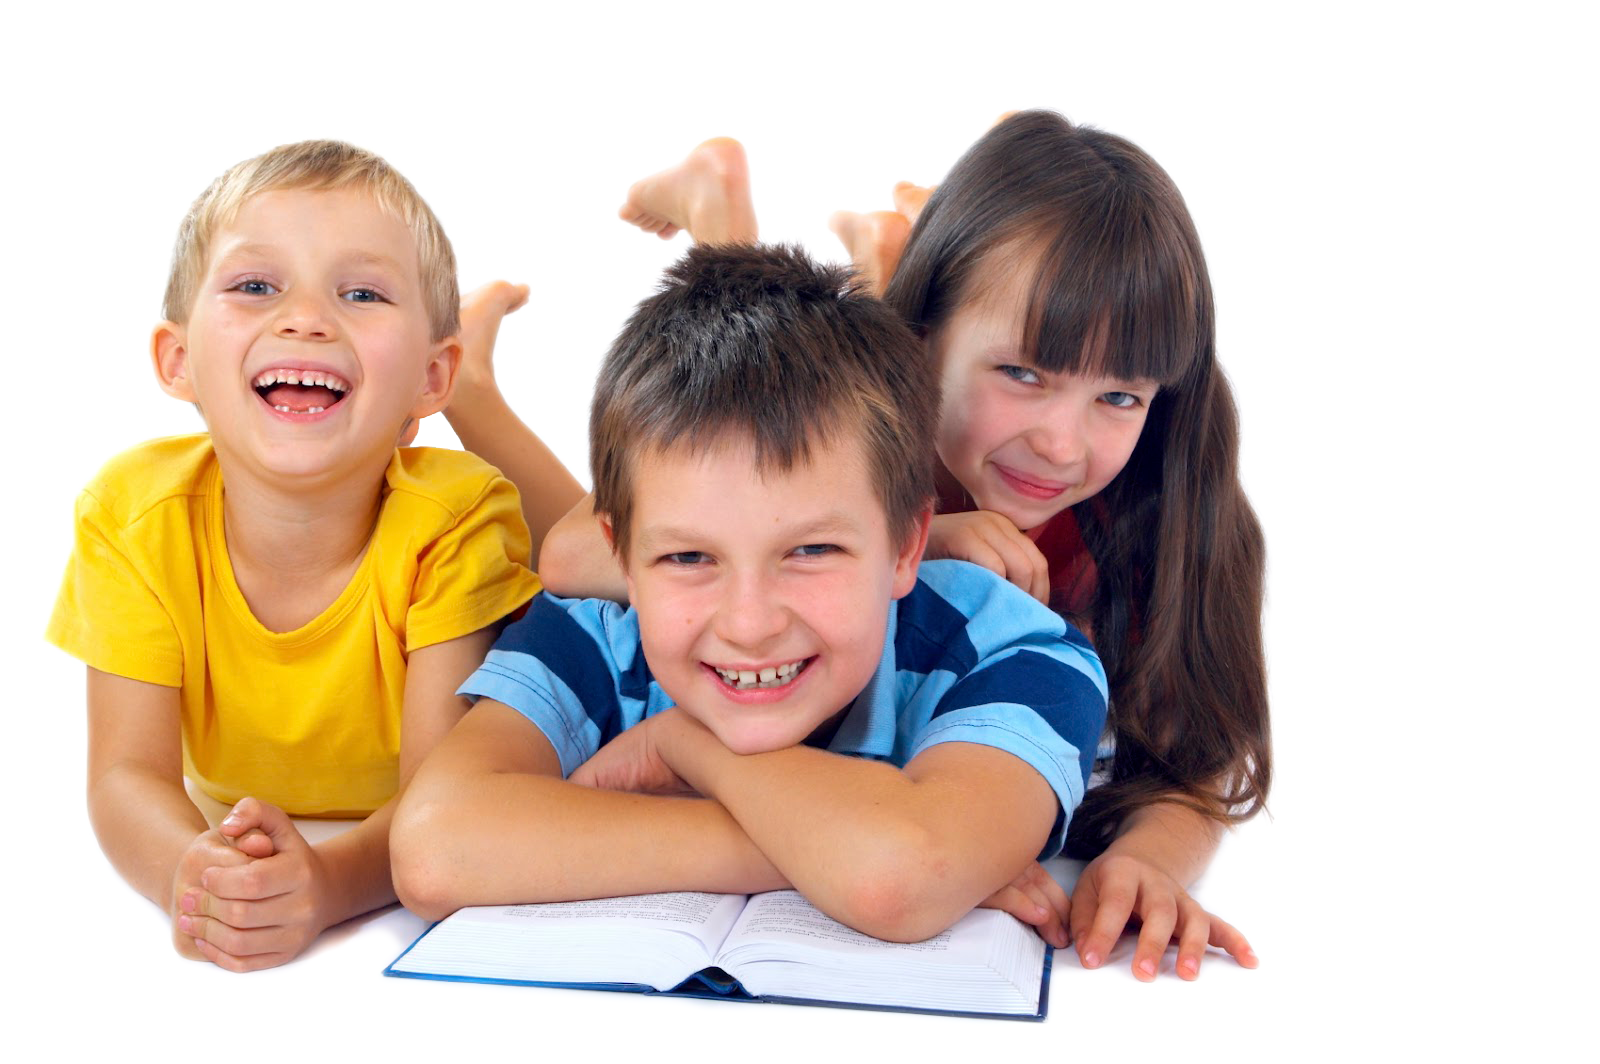 Happy-children-reading copy - PNG HD Of Kids Reading